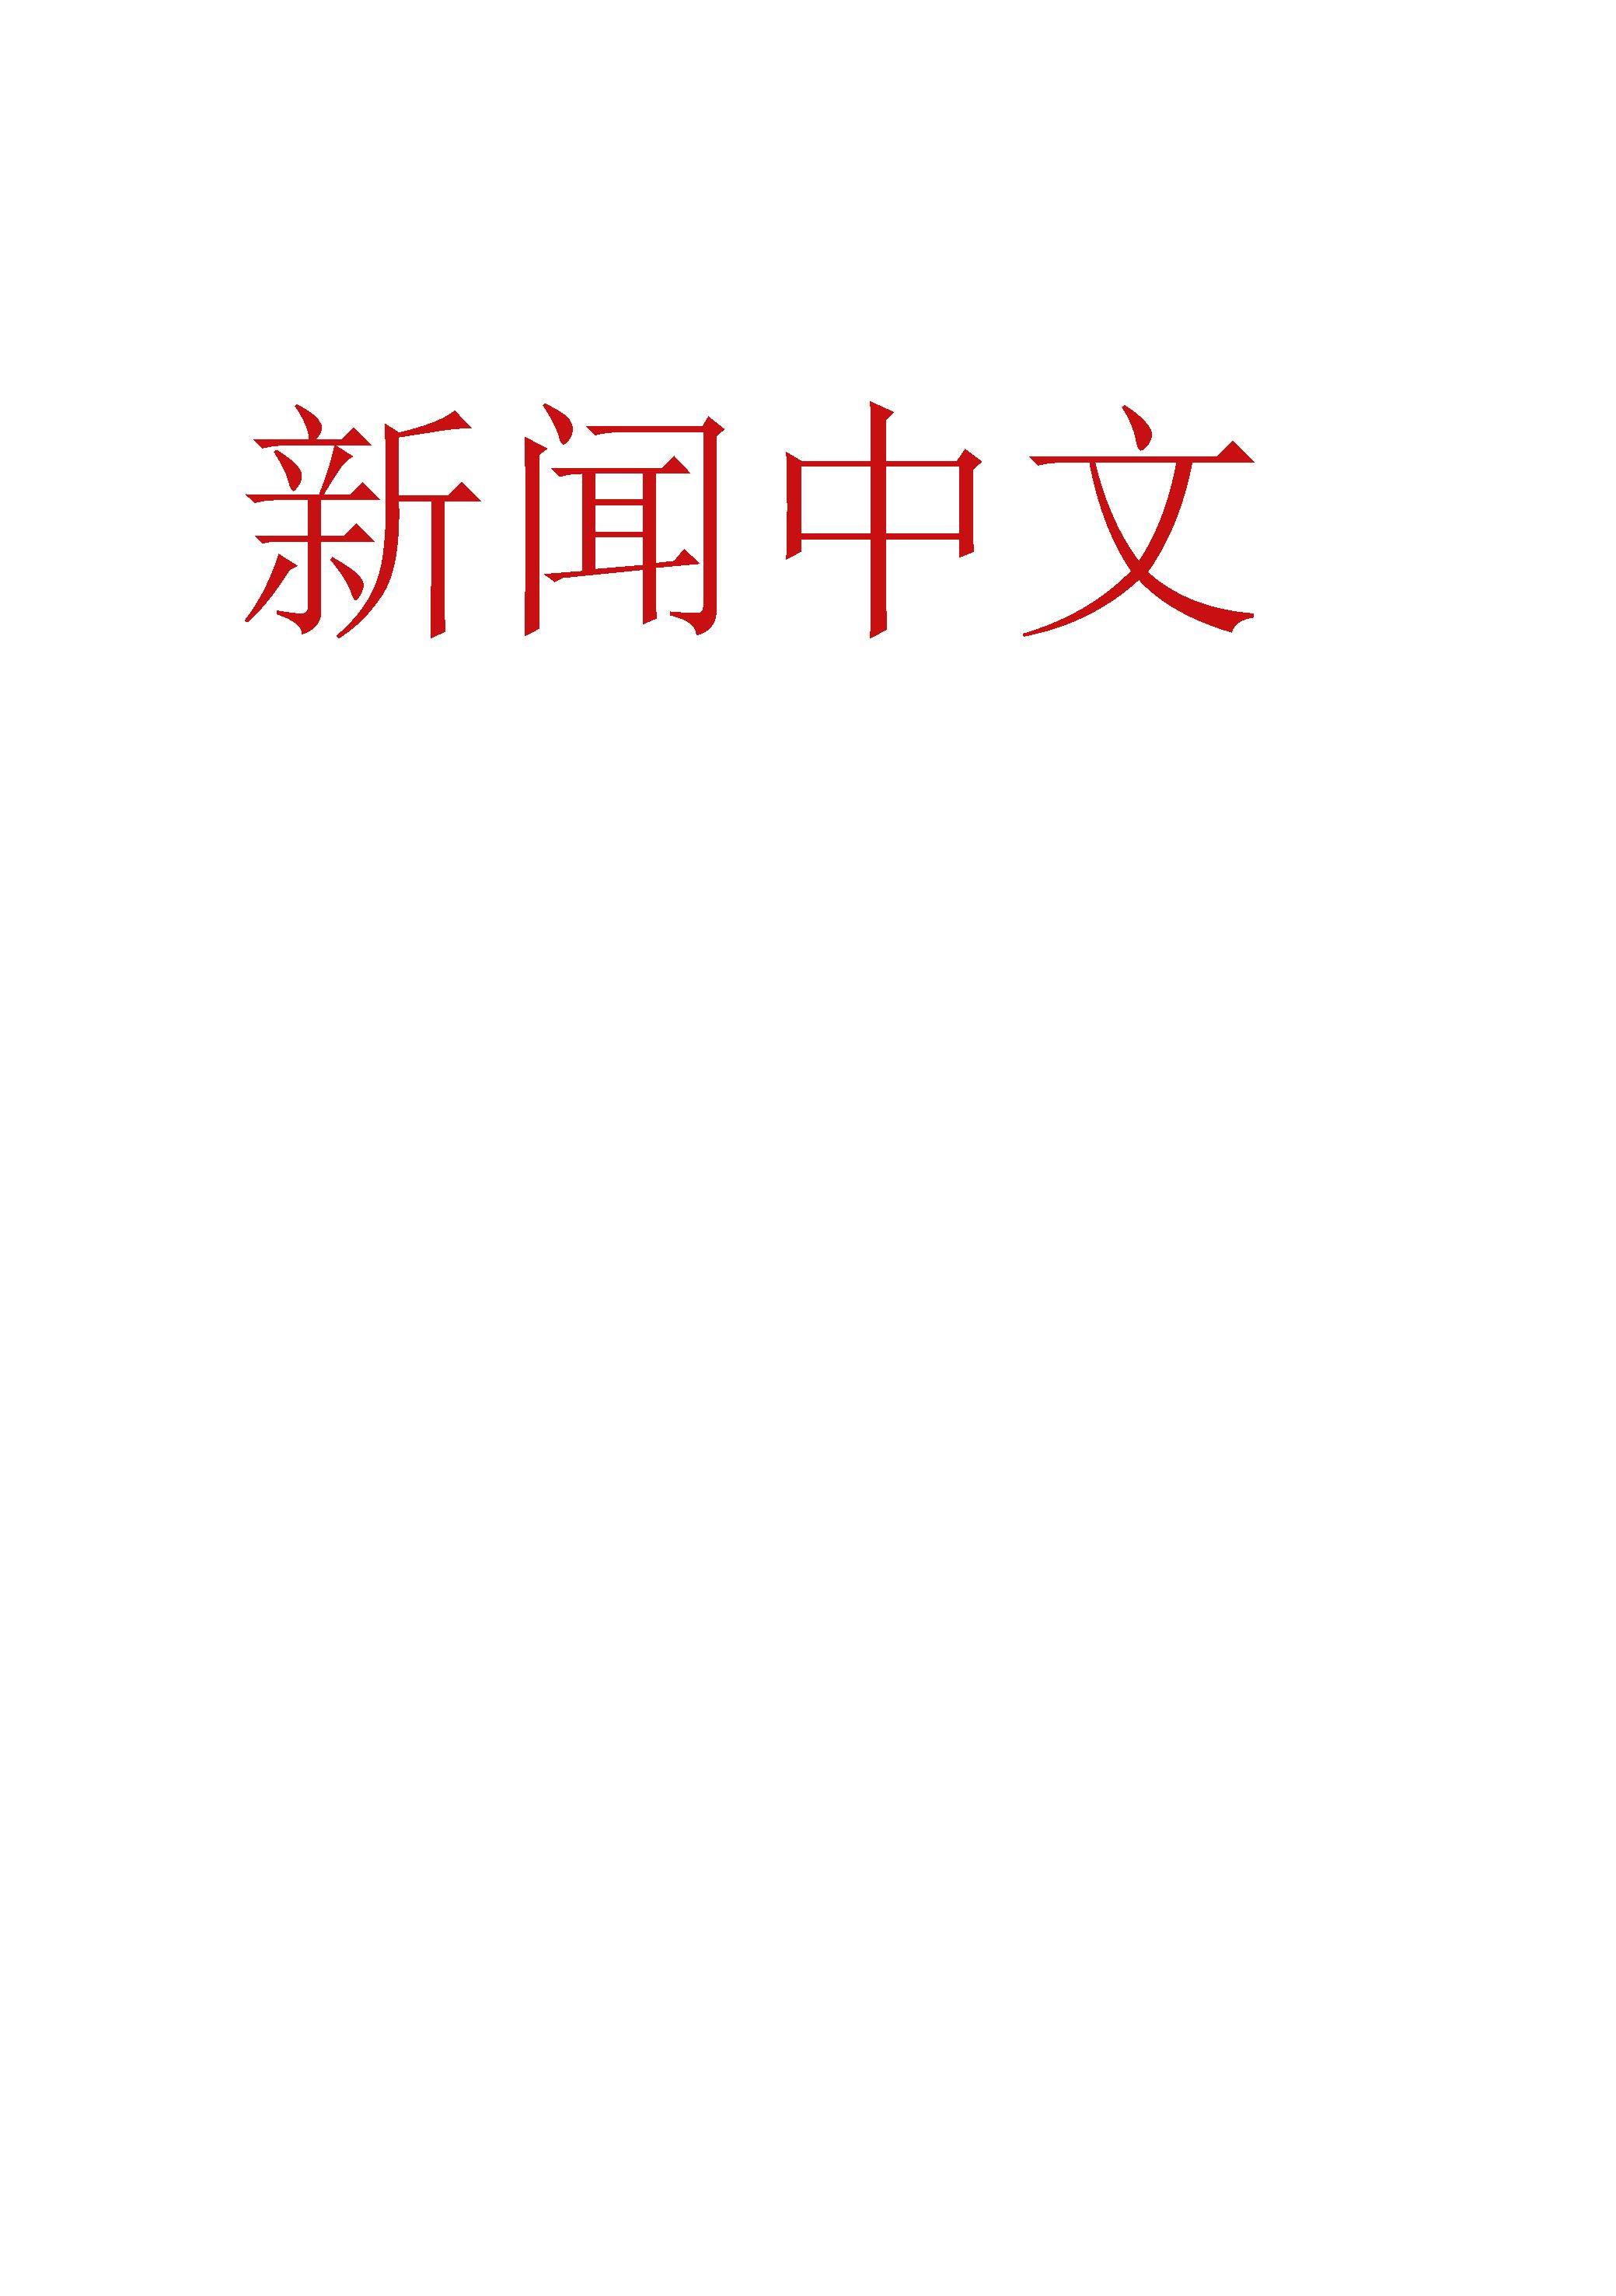 Newsletter in Chinese